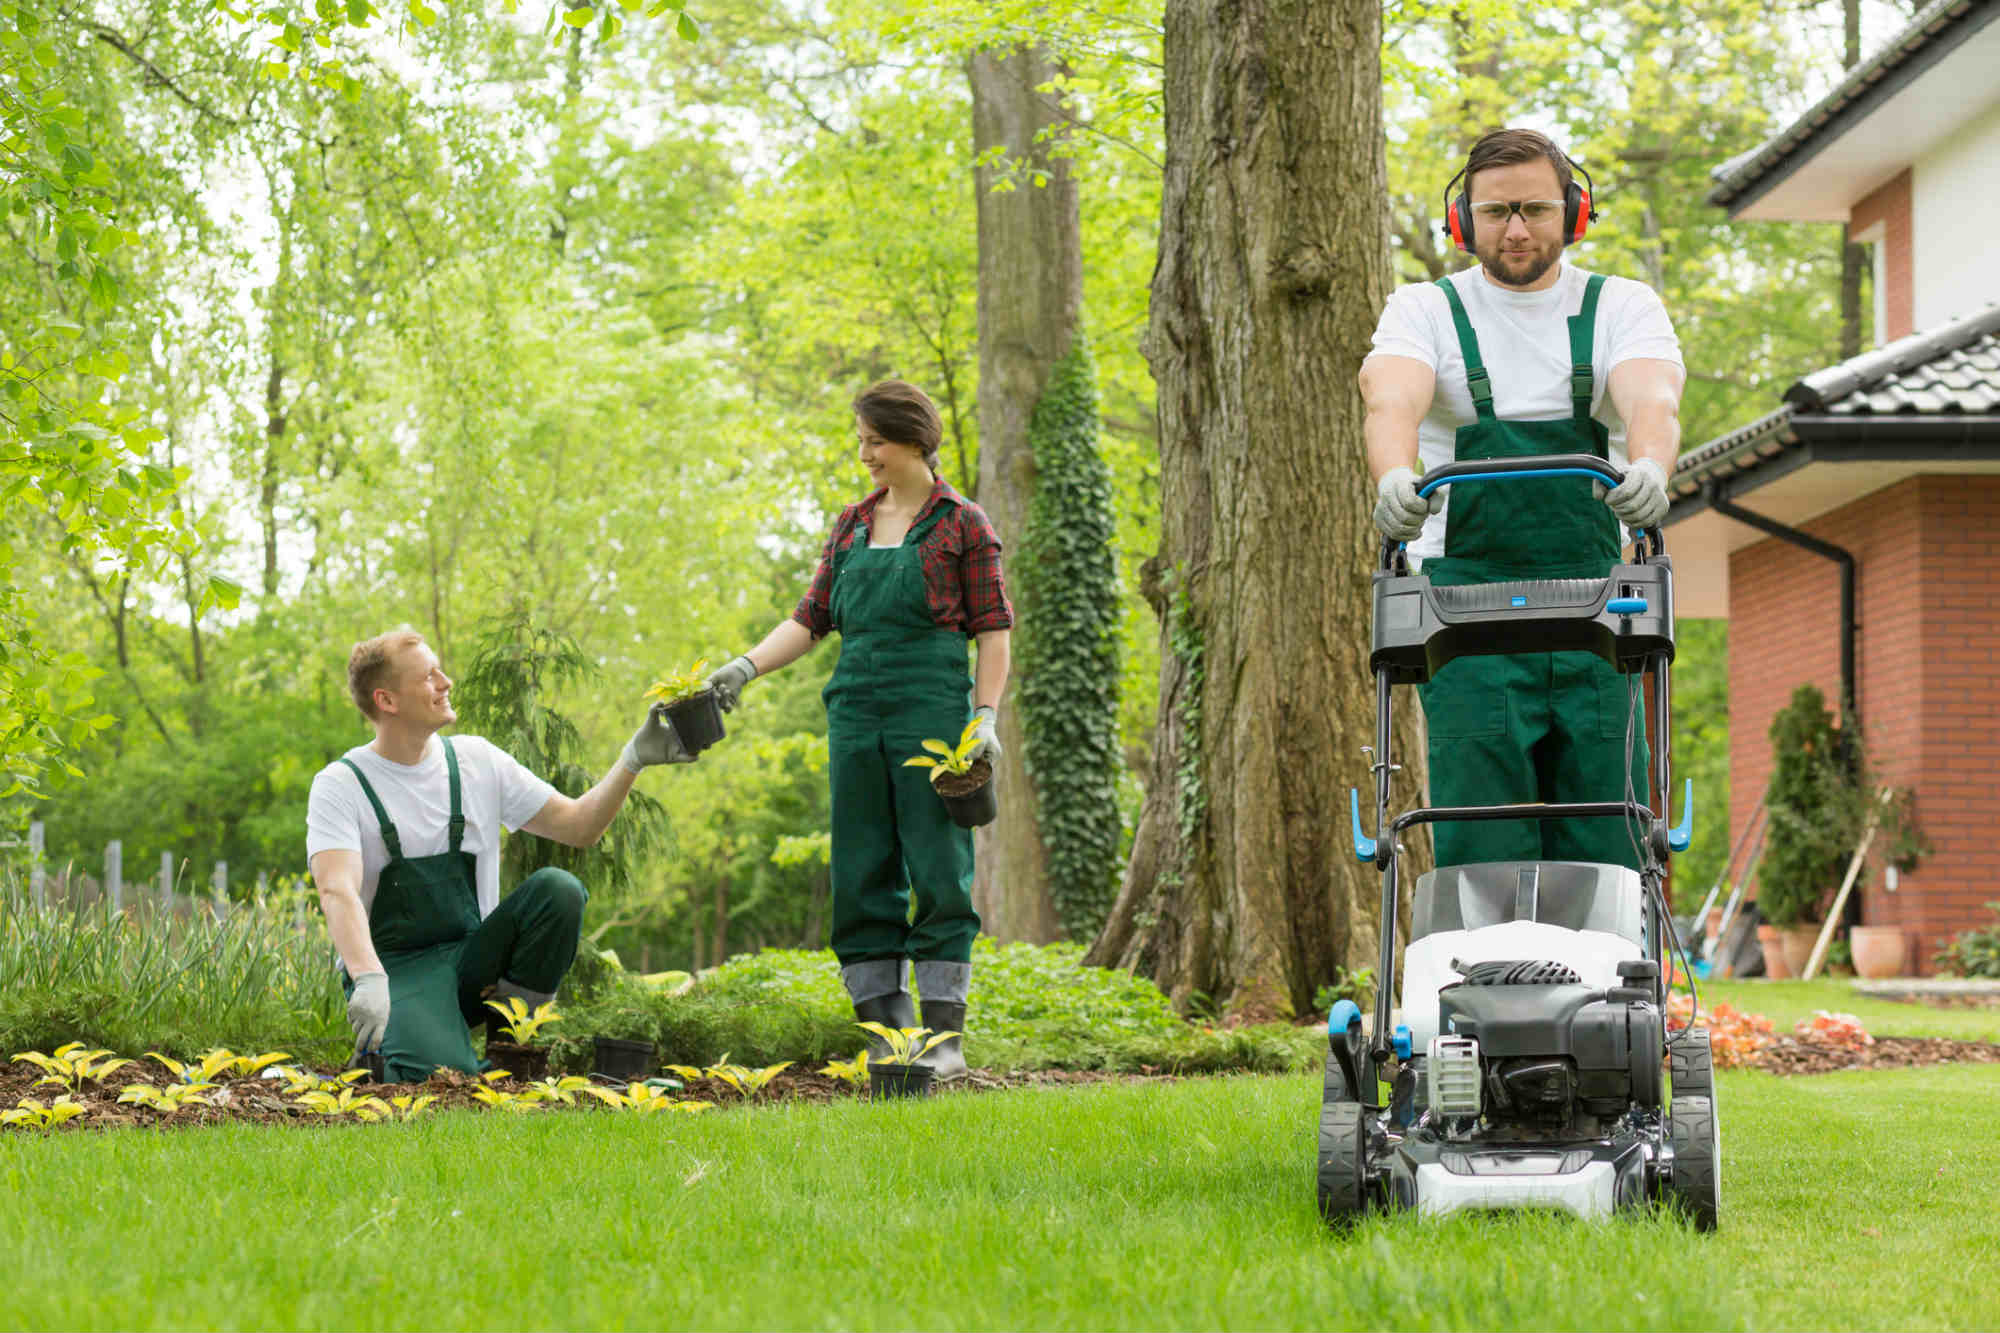 Quality Lawn Care Services Provider In Waco Tx 76712